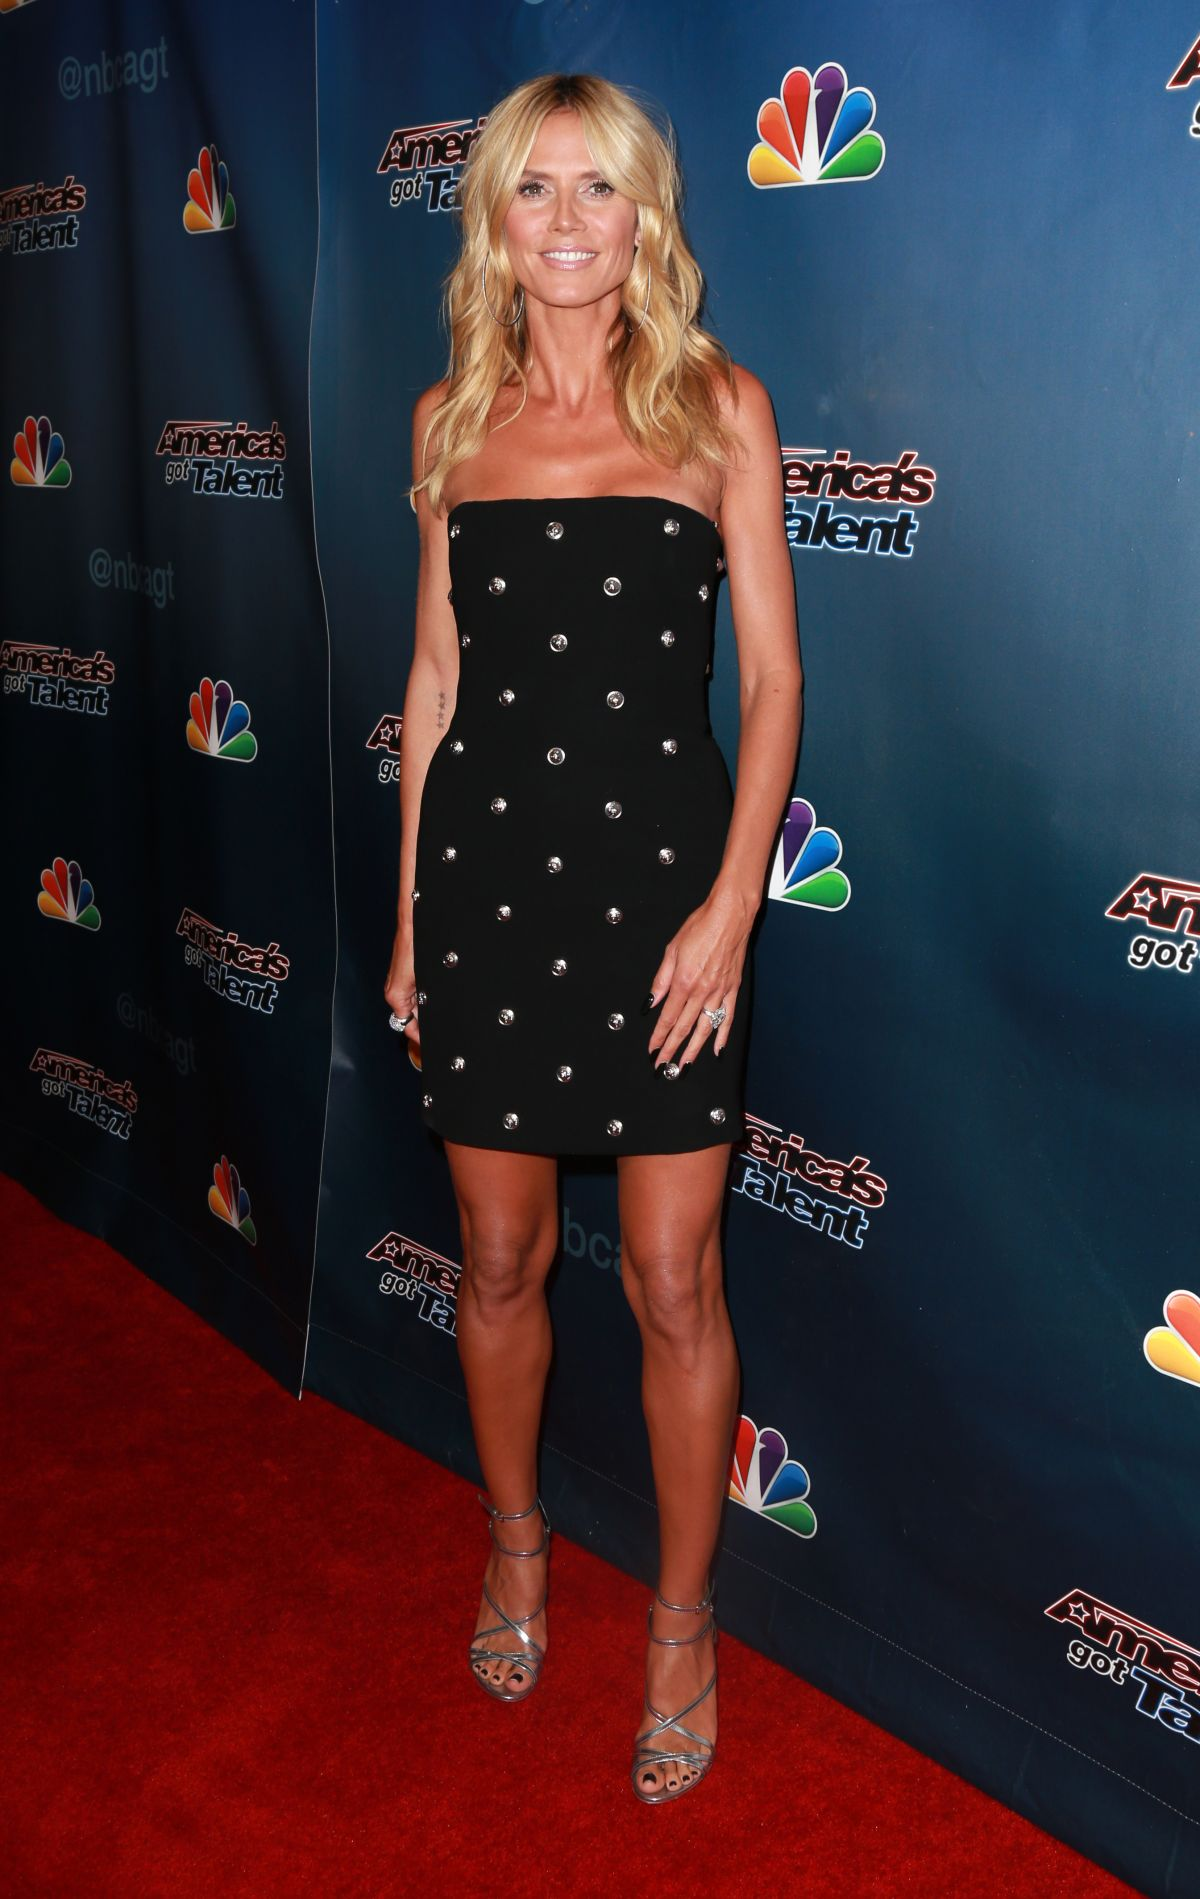 Heidi Klum At Americas Got Talent Post Show Red Carpet Event In Hollywood  Posted By Aleksandar August   No Comments Full